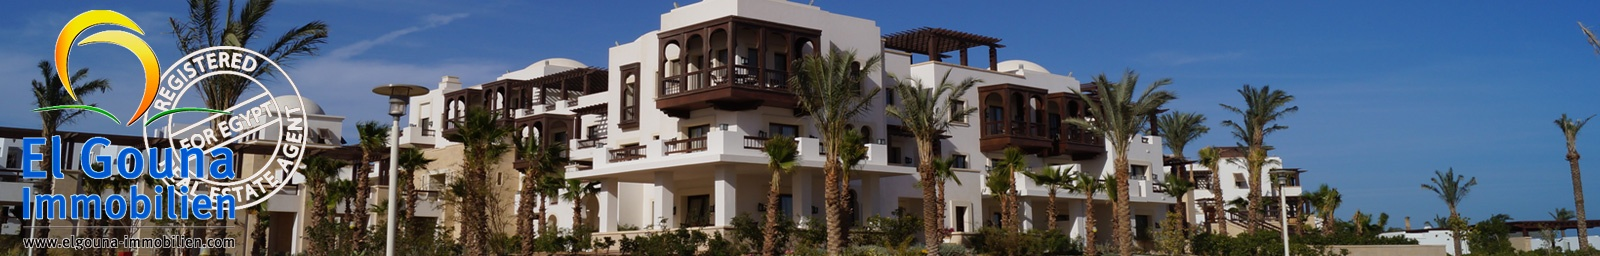 El Gouna Immobilien Ltd.